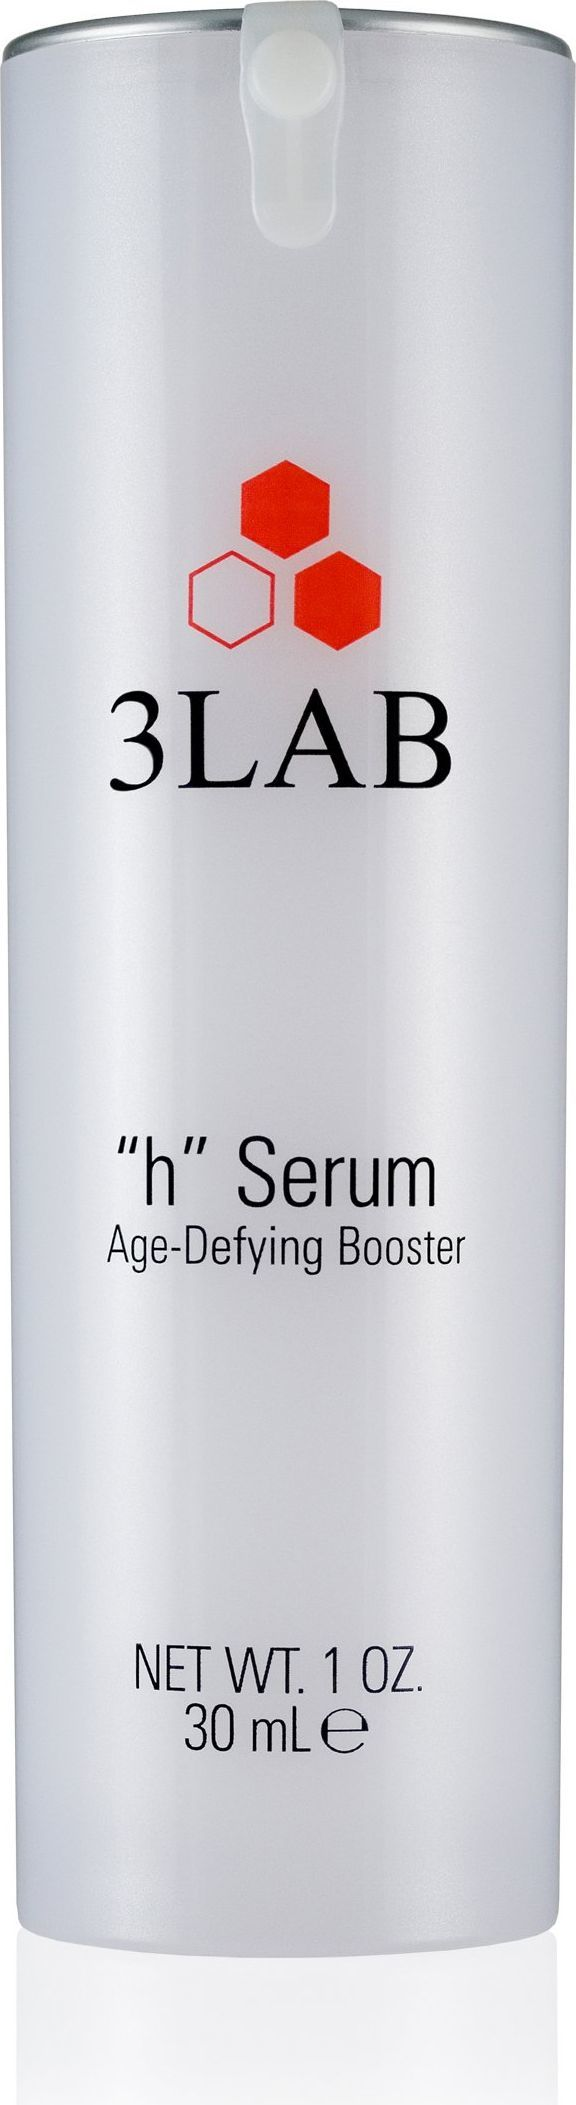 3LAB H Serum W 30ml 1